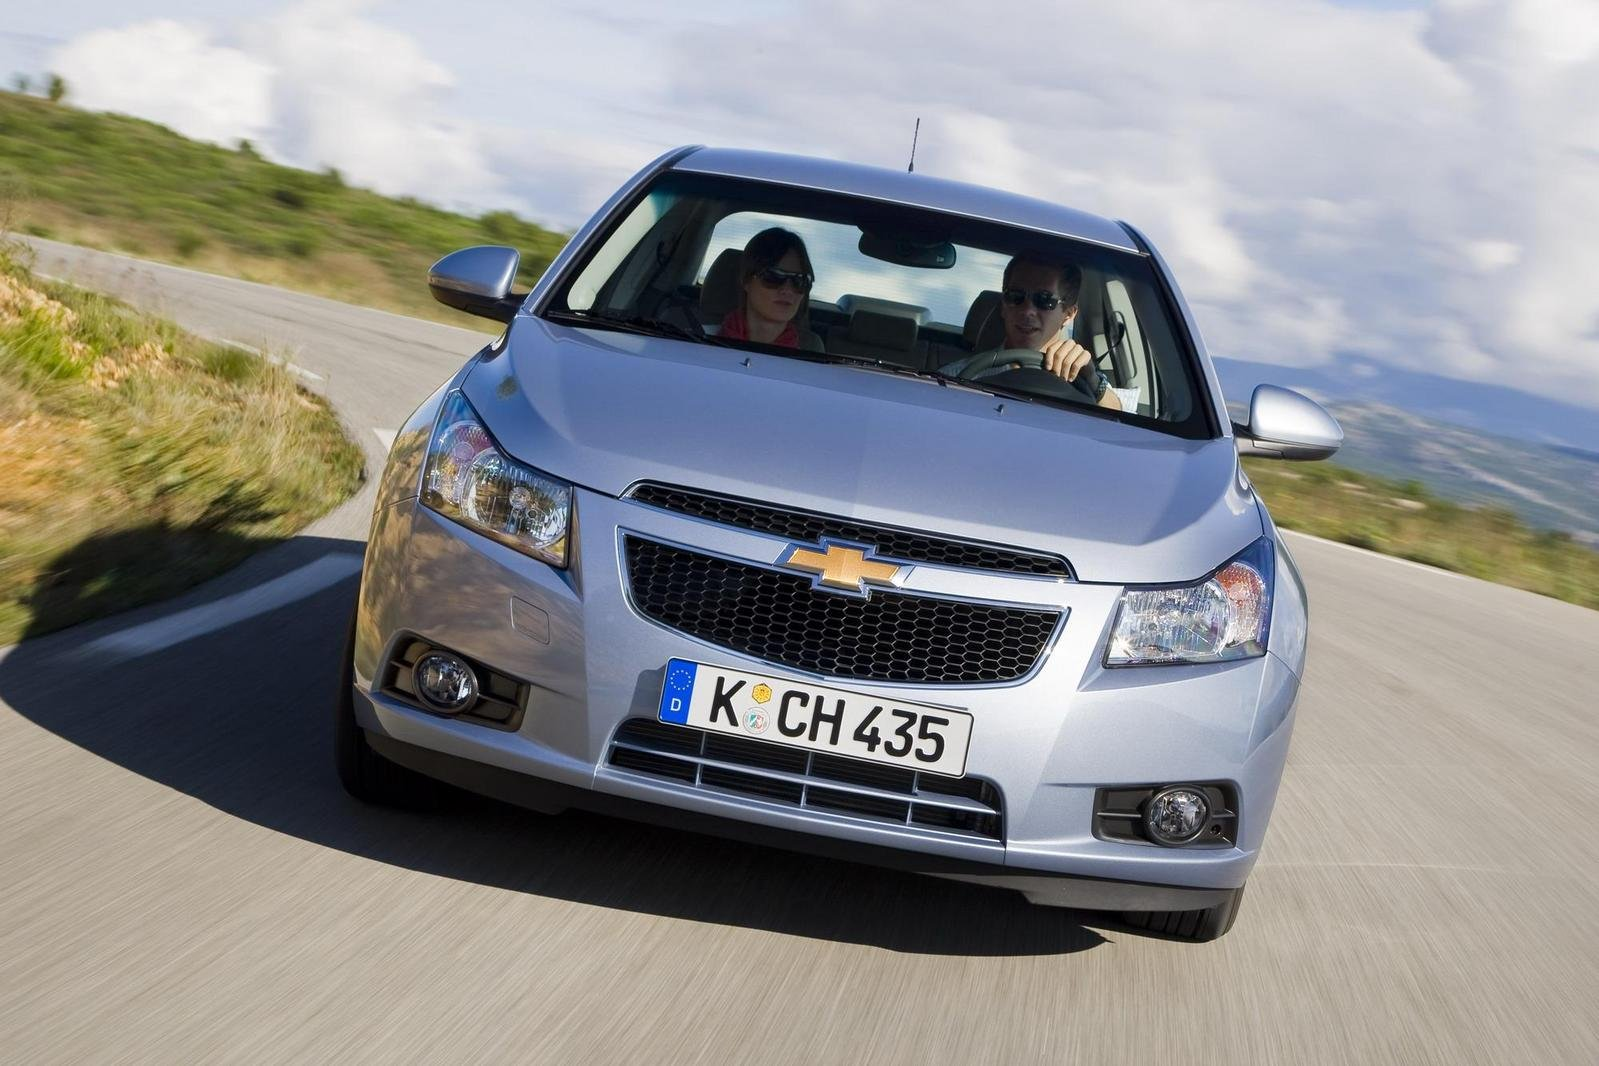 2010 chevrolet cruze picture 291835 car review top speed. Black Bedroom Furniture Sets. Home Design Ideas